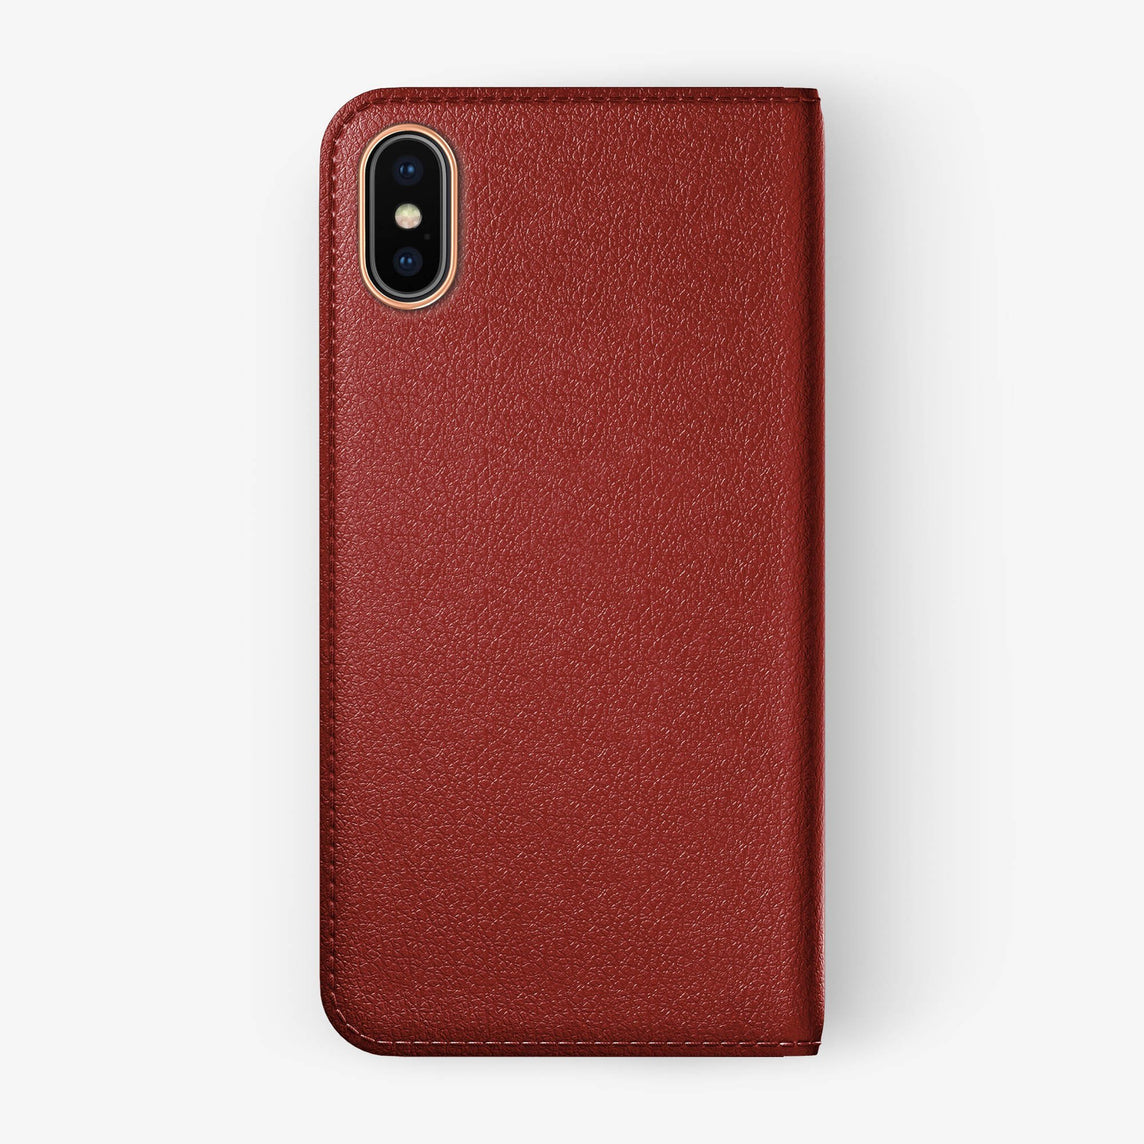 Red Calfskin iPhone Folio Case for iPhone X finishing rose gold - Hadoro Luxury Cases - img5